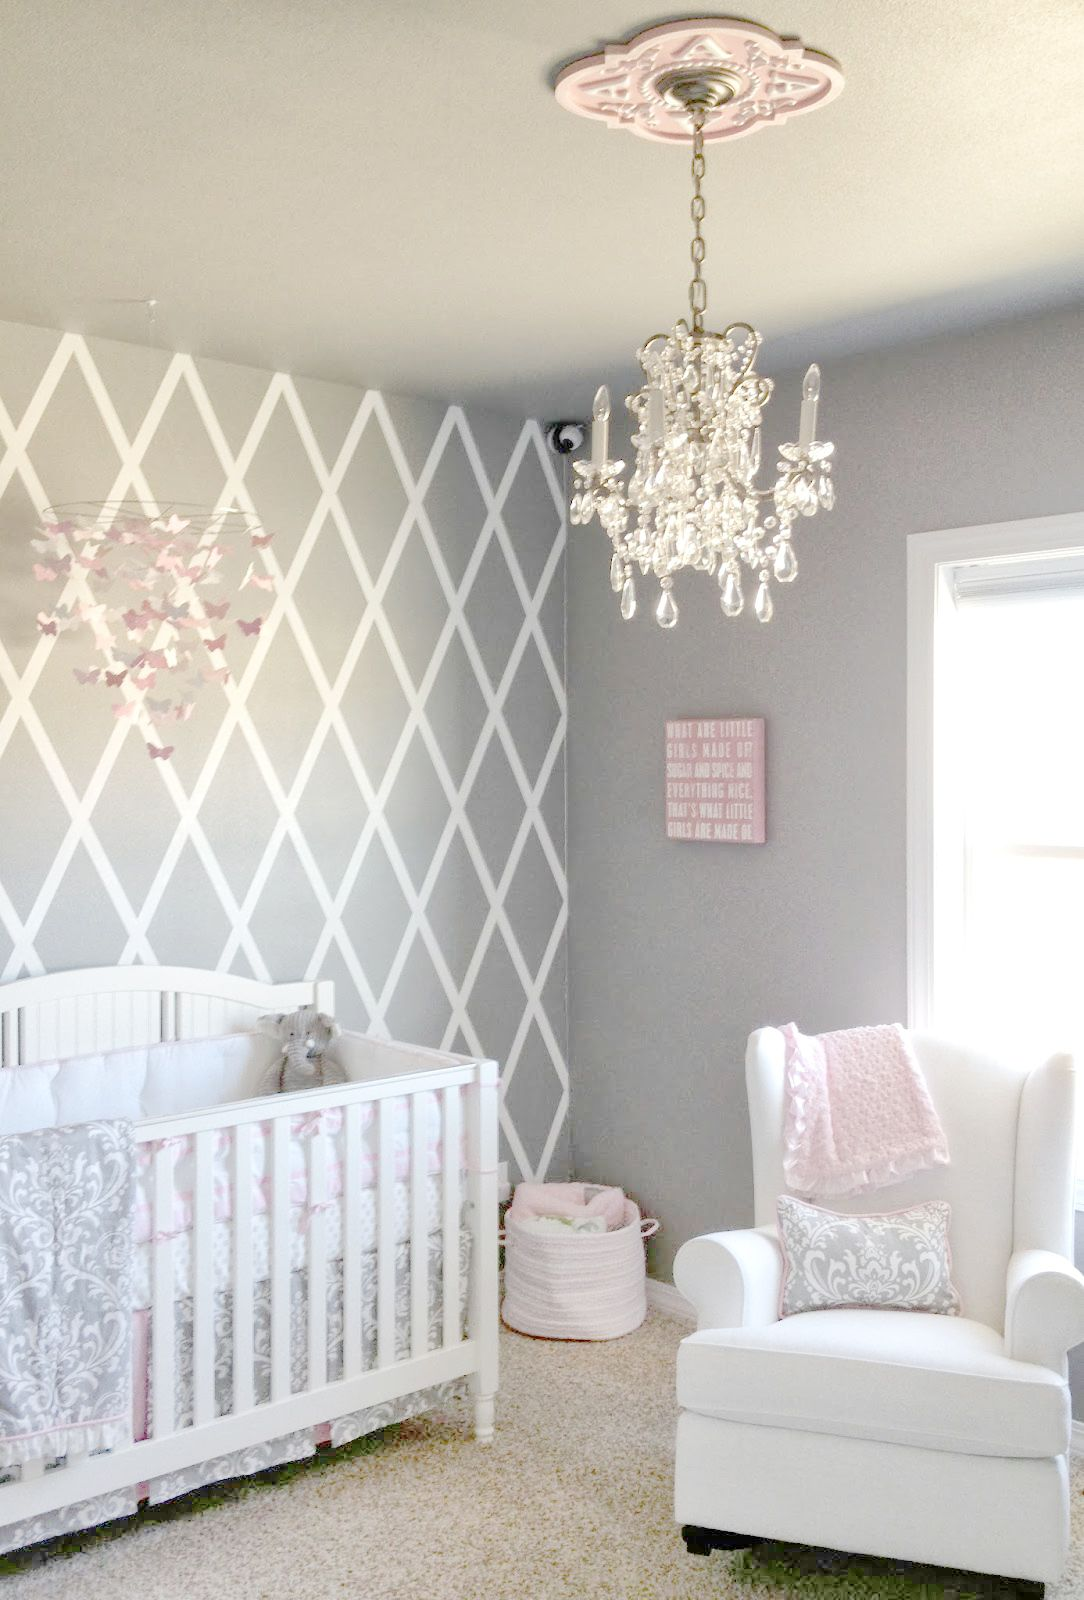 Baby Girl Nursery Decor Beautiful gray and pink nursery features our Stella Gray Baby Bedding  Collection! So pretty for a baby girlu0027s nursery!